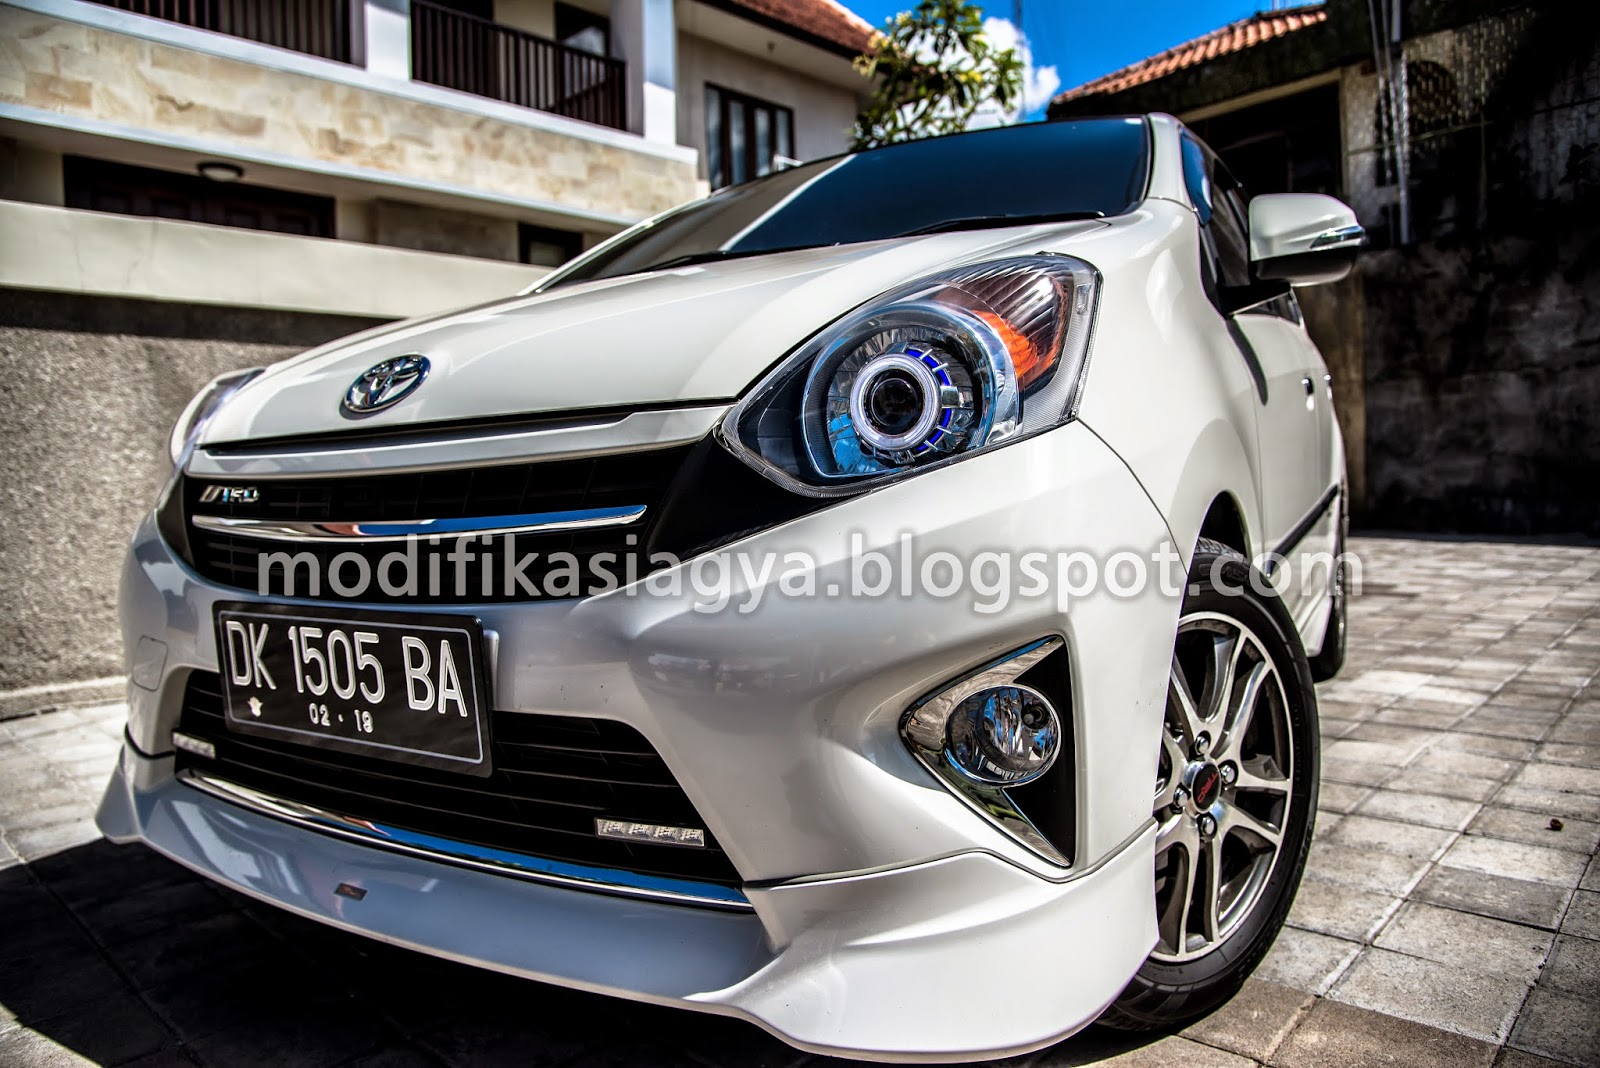 98 Modif Interior Avanza Simple 2018 Modifikasi Mobil Avanza